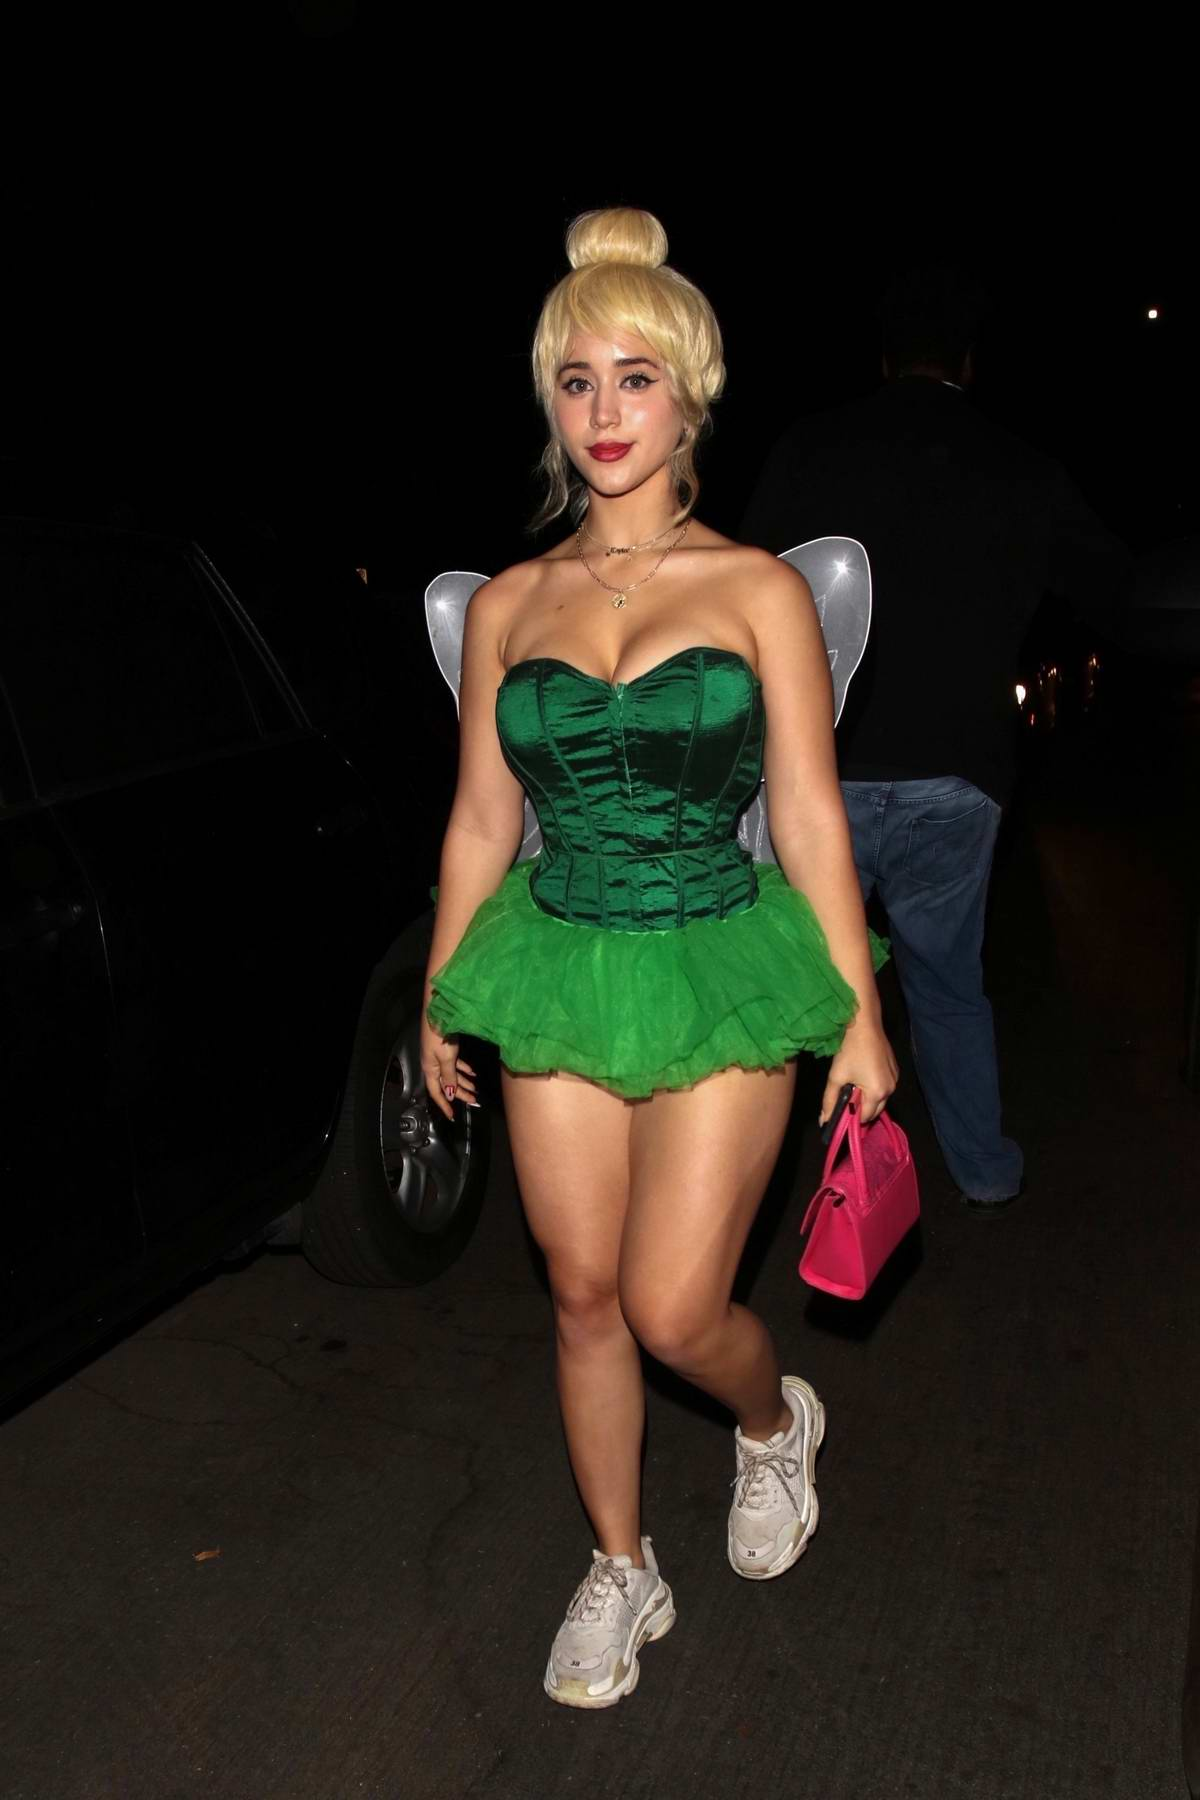 Caylee Cowan dresses up as Tinker Bell while attending Dan Bilzerian's Halloween party in West Hollywood, California